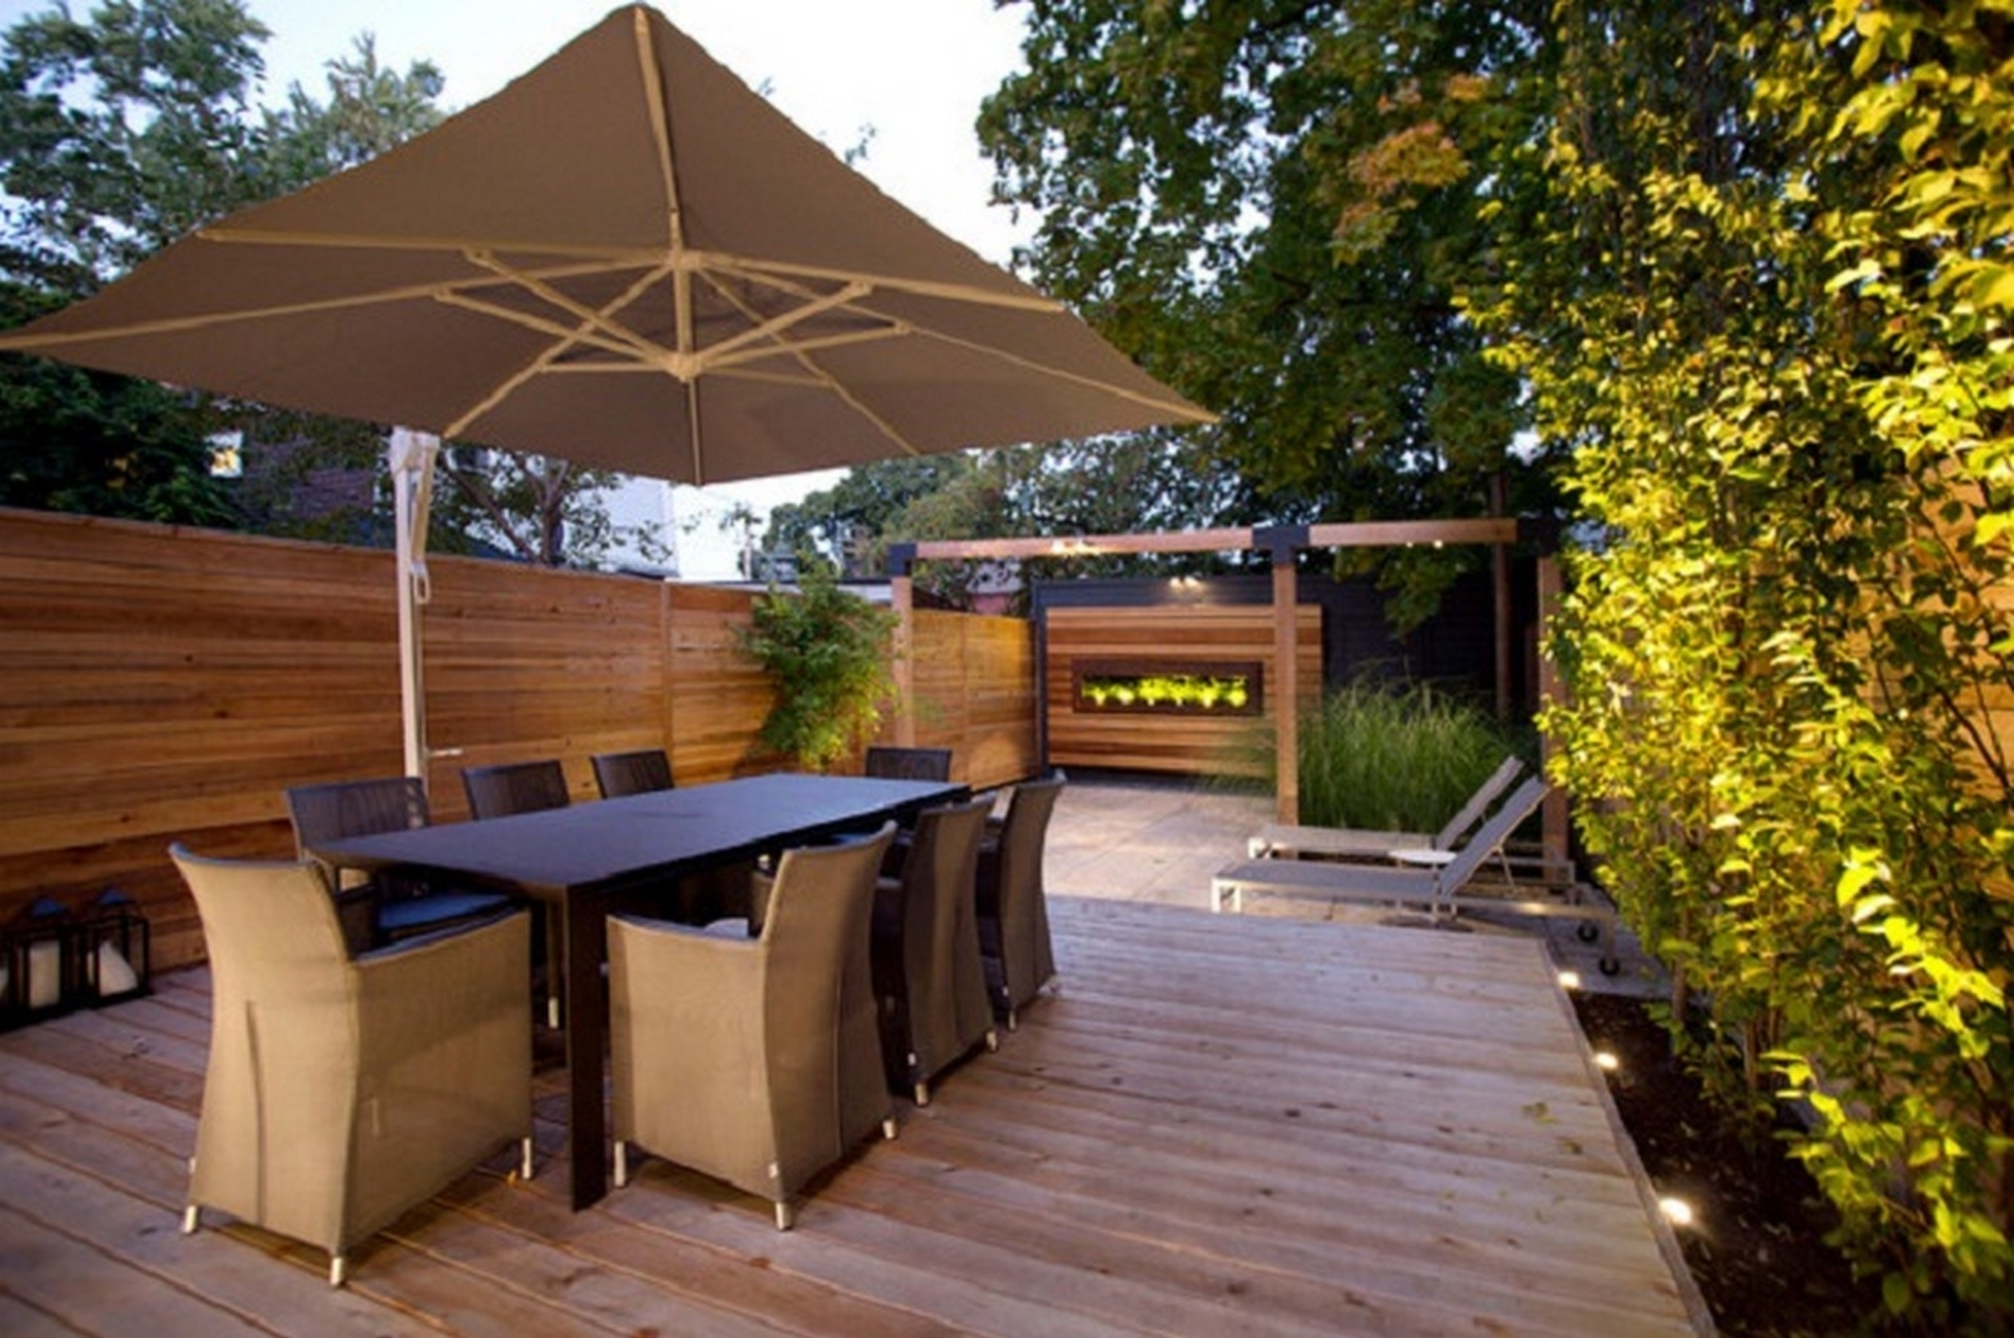 Most Recently Released The Patio Table Umbrella For Comfort Gathering — Mistikcamping Home Pertaining To Wooden Patio Umbrellas (View 20 of 20)